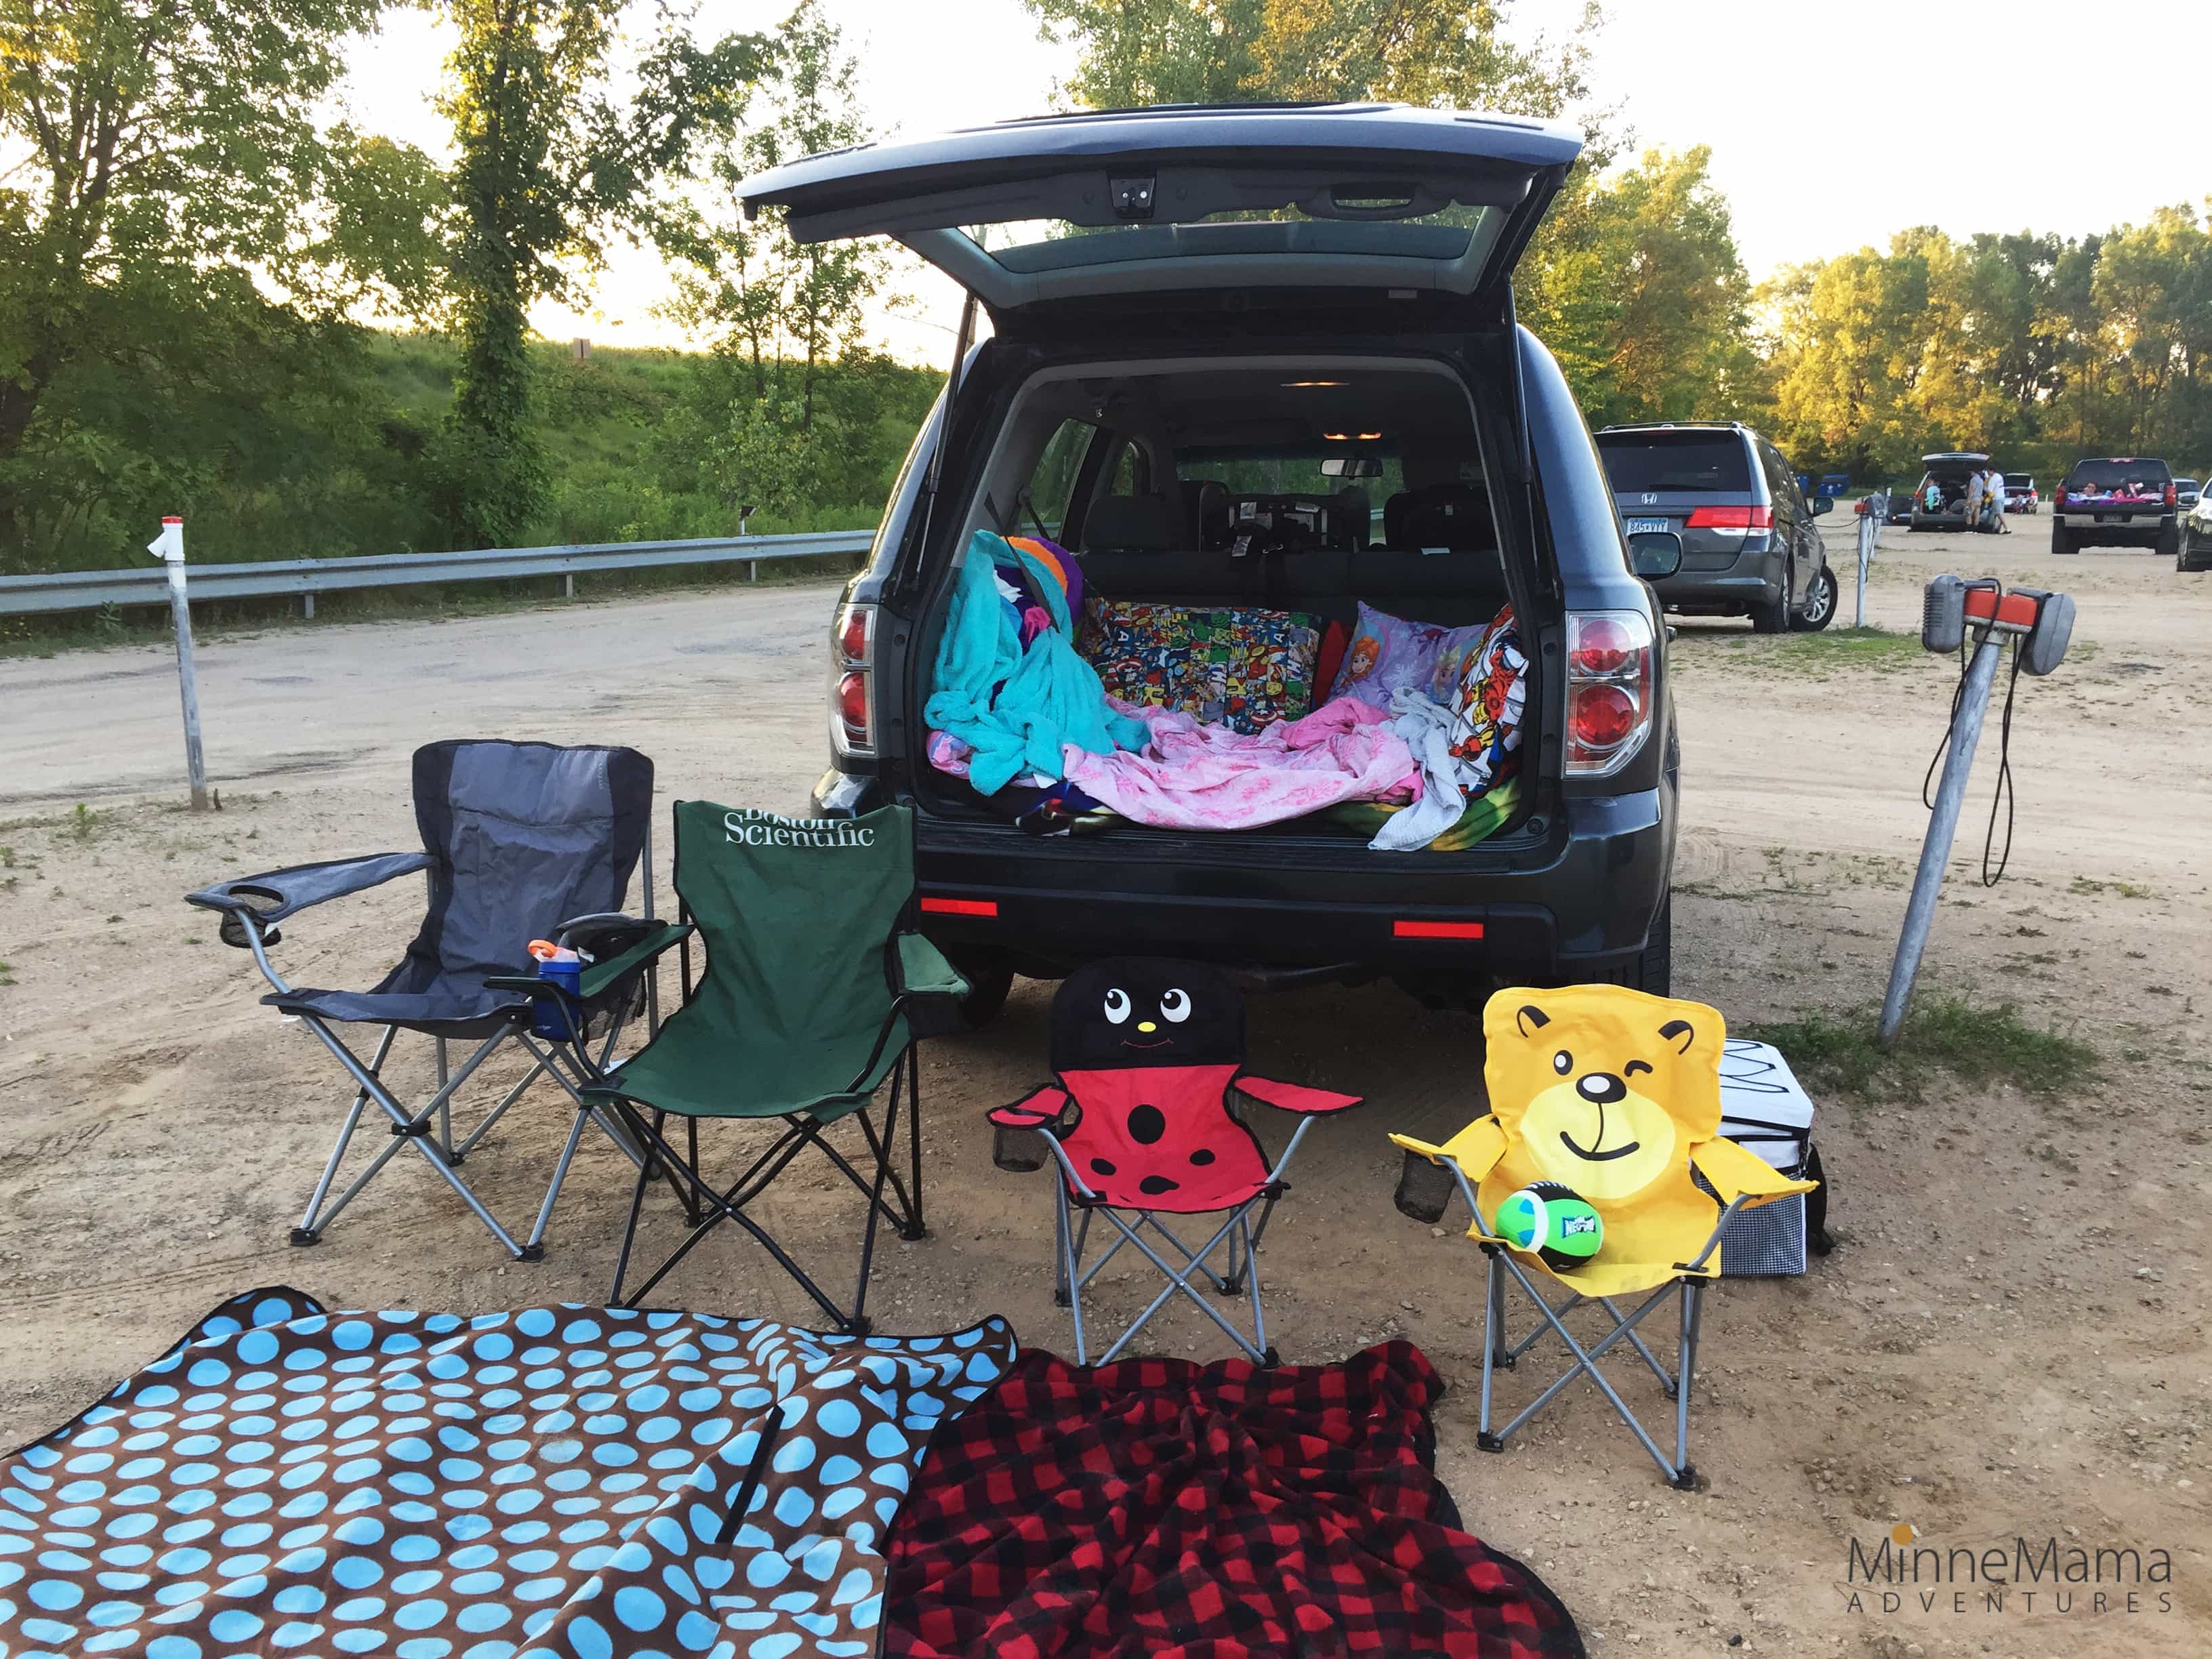 Vali Hi Drive In Theater Suvival Of The Coolest Minnemama Adventures